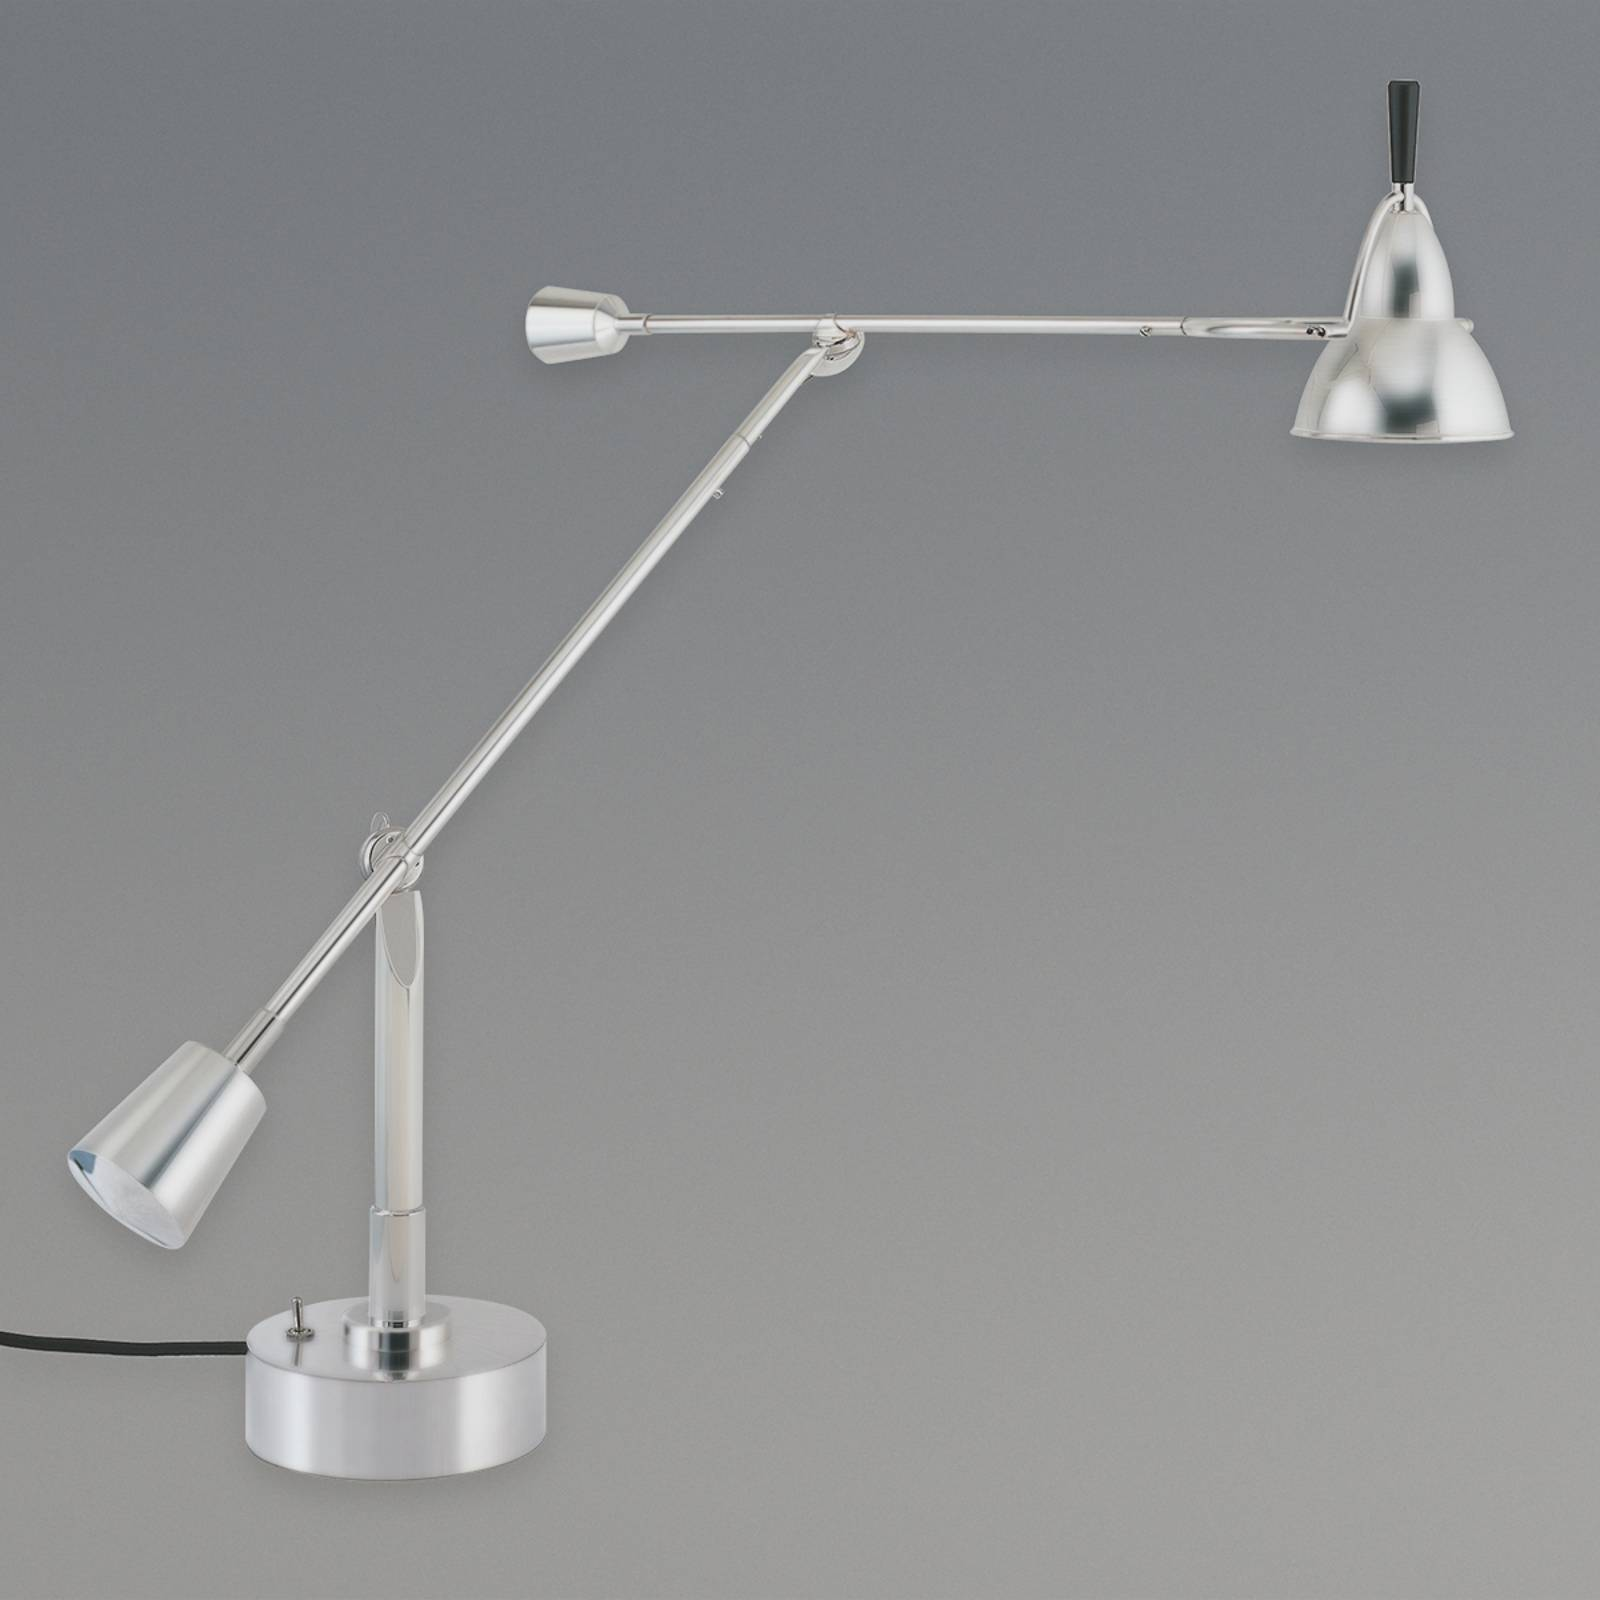 Table lamp by Edward-Wilfrid Buquet, nickel from Tecnolumen